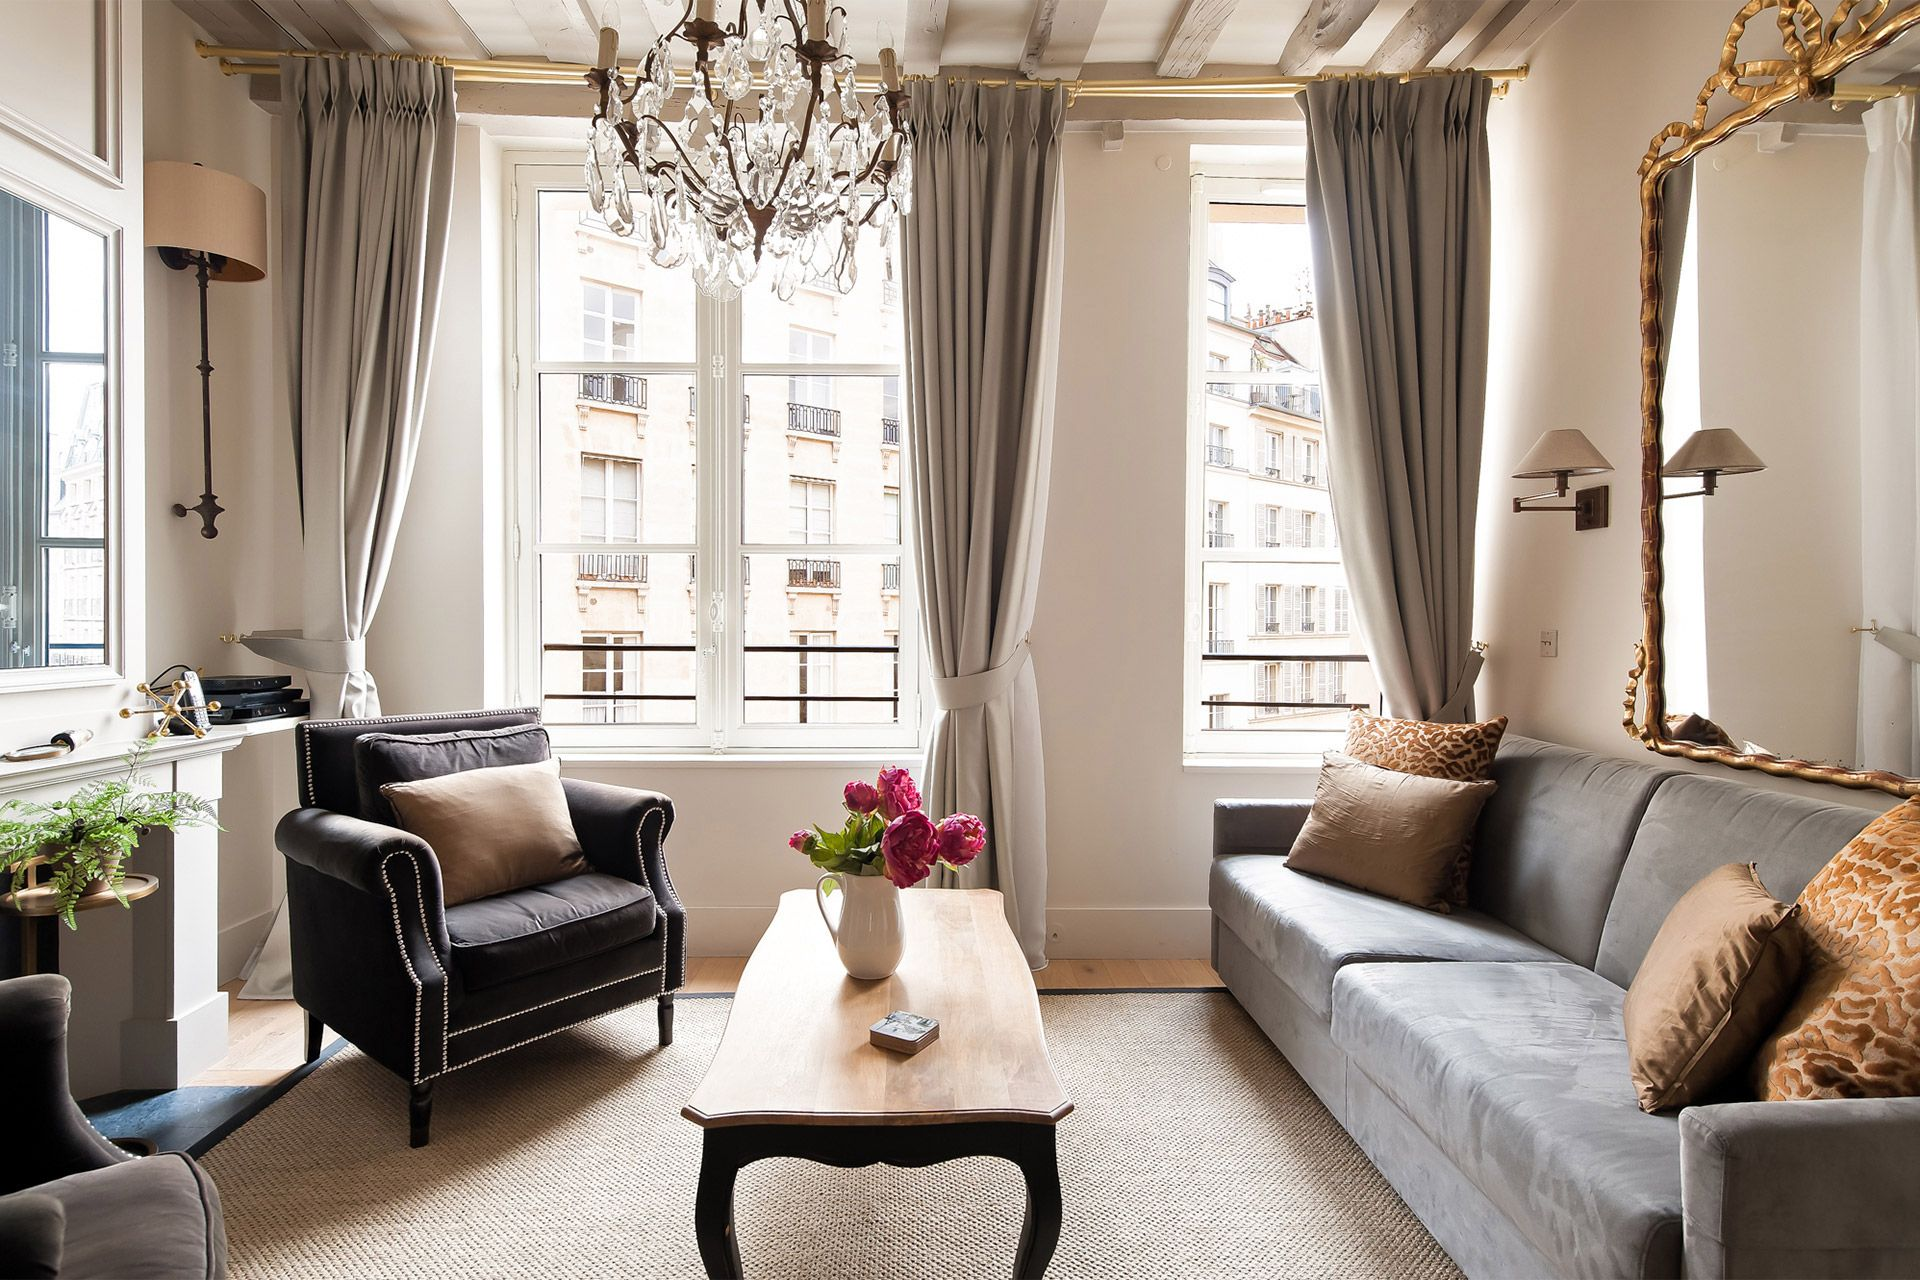 Place Dauphine One Bedroom Apartment Rental Paris Paris Living Room Decor Parisian Living Room One Bedroom Apartment